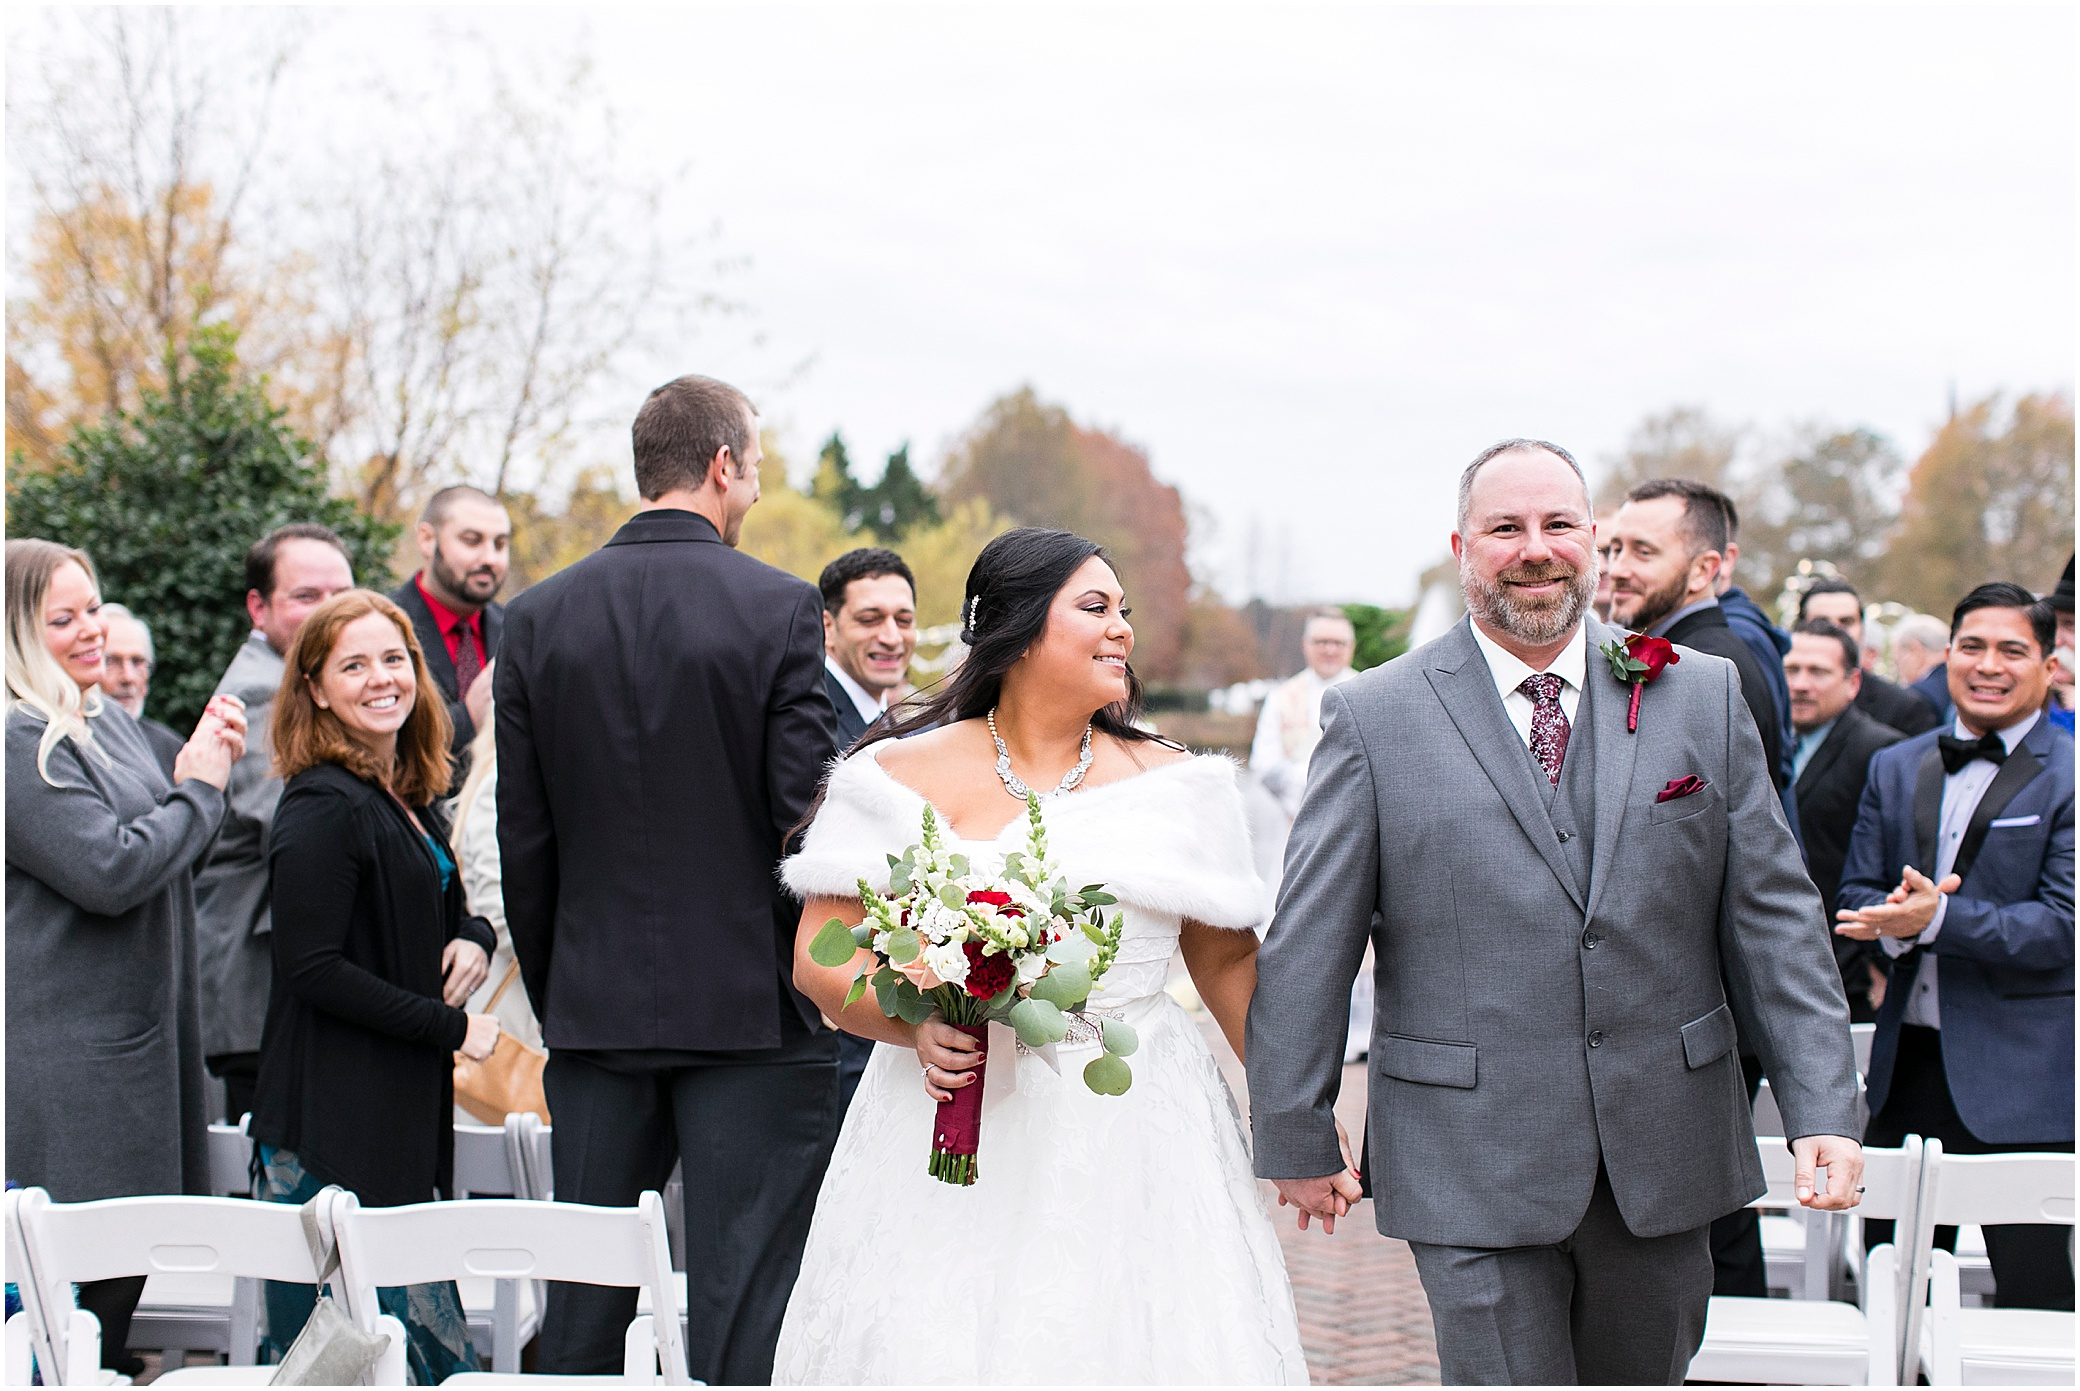 founders inn holiday wedding, Christmas wedding, outdoor winter ceremony